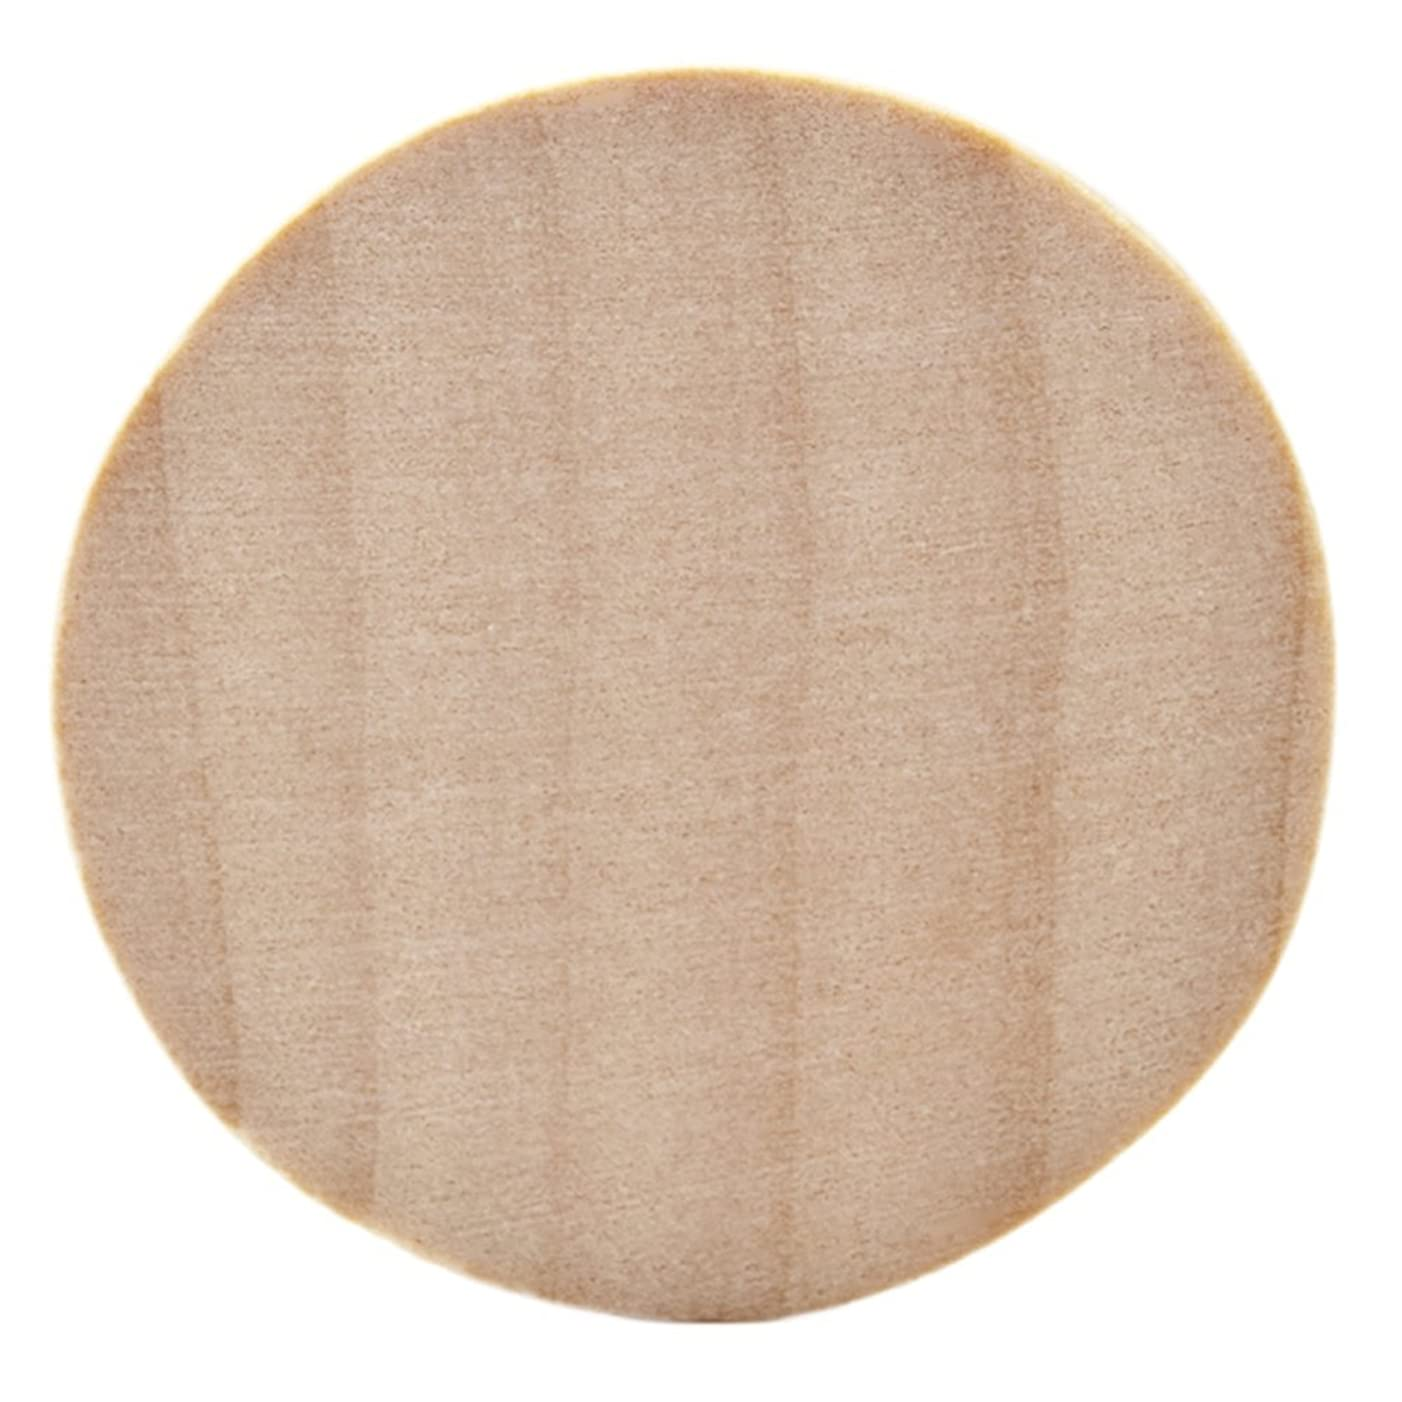 Natural Unfinished Round Wood Circle Cutout 1.5 Inch - Bag of 100